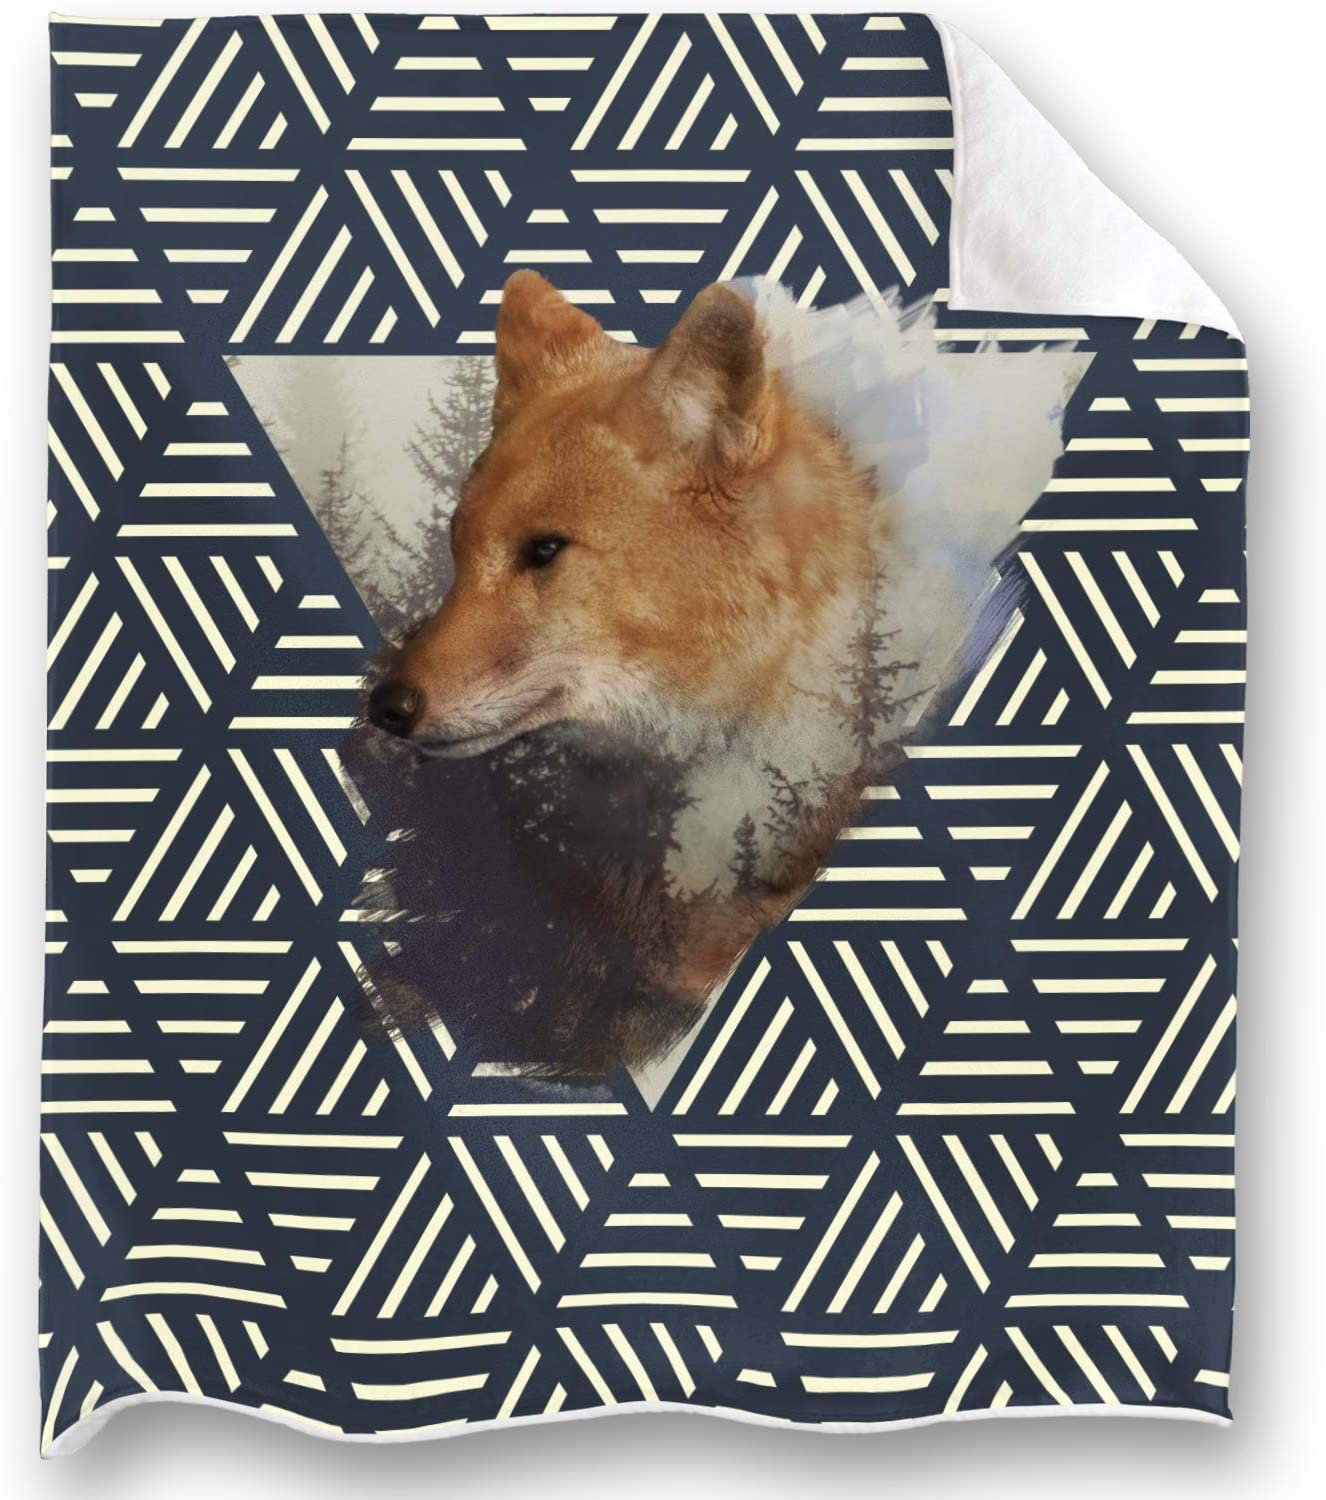 LOONG DESIGN Creative Pattern Fox Throw Blanket Super Soft, Fluffy, Premium Sherpa Fleece Blanket 50'' x 60'' Fit for Sofa Chair Bed Office Travelling Camping Gift